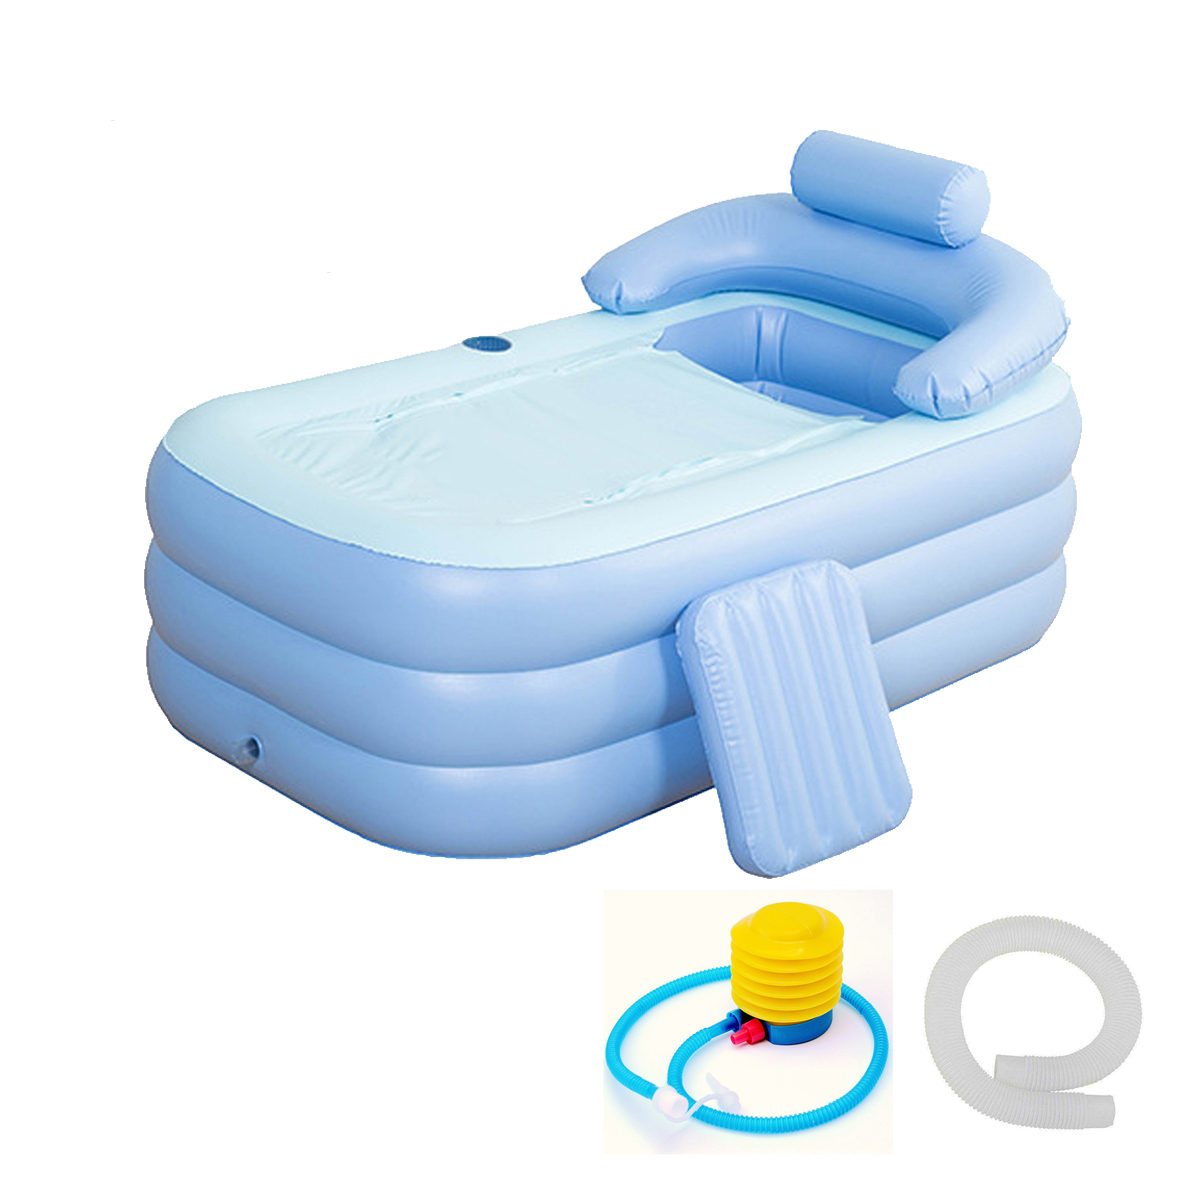 160 *84* 64cm Blue Large Size PVC Folding Portable Inflatable Bath Bathtub For Adults With Air Pump SPA Household Inflatable Tub160 *84* 64cm Blue Large Size PVC Folding Portable Inflatable Bath Bathtub For Adults With Air Pump SPA Household Inflatable Tub